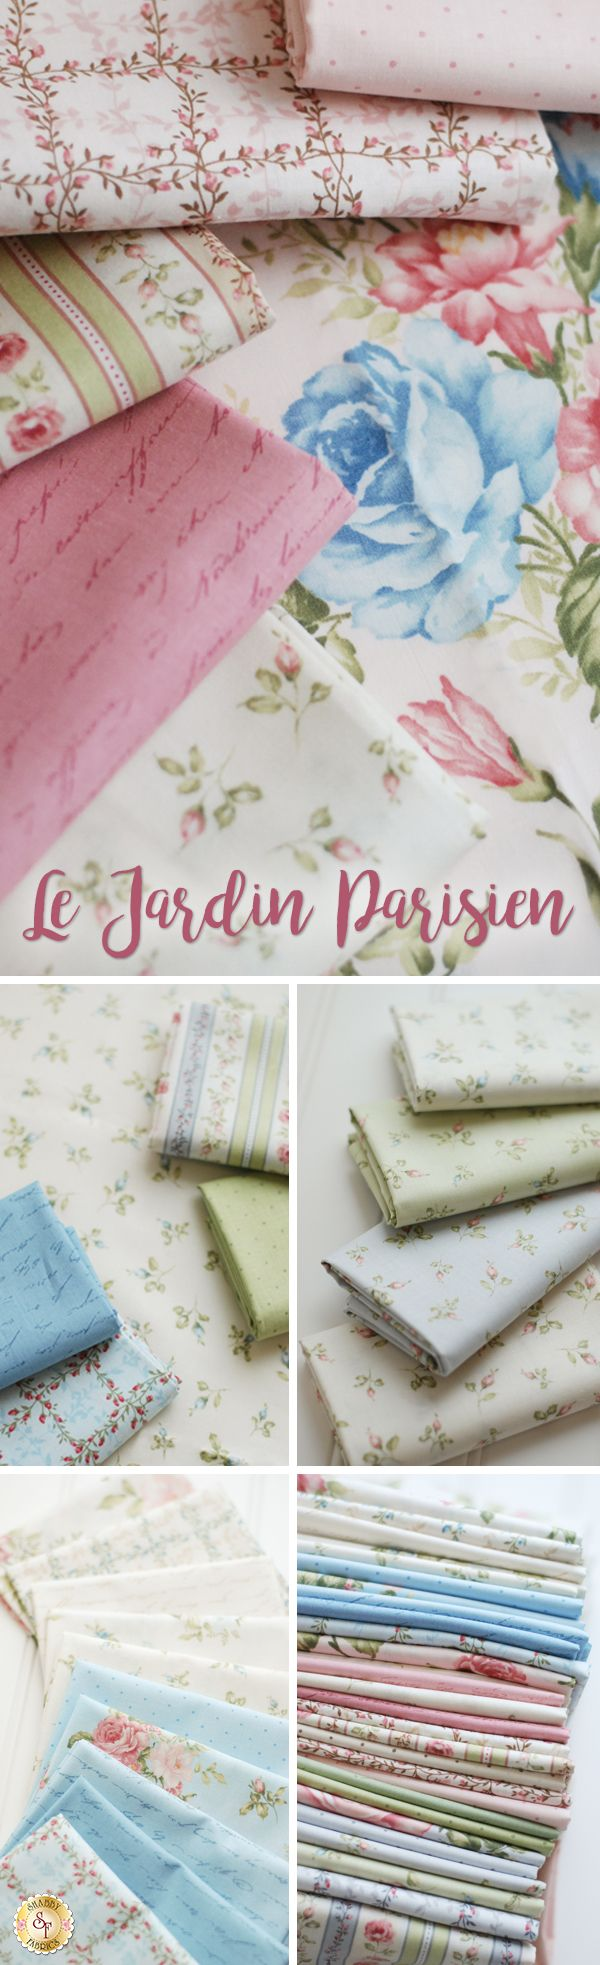 Le Jardin Parisien - Robert Kaufman Fabrics Invoke classic, Parisian romance with the soft florals and vintage hues of Le Jardin Parisien. This beautiful and sophisticated collection by Robert Kaufman Fabrics is reminiscent of another era with shades of pink, ivory, and sage.